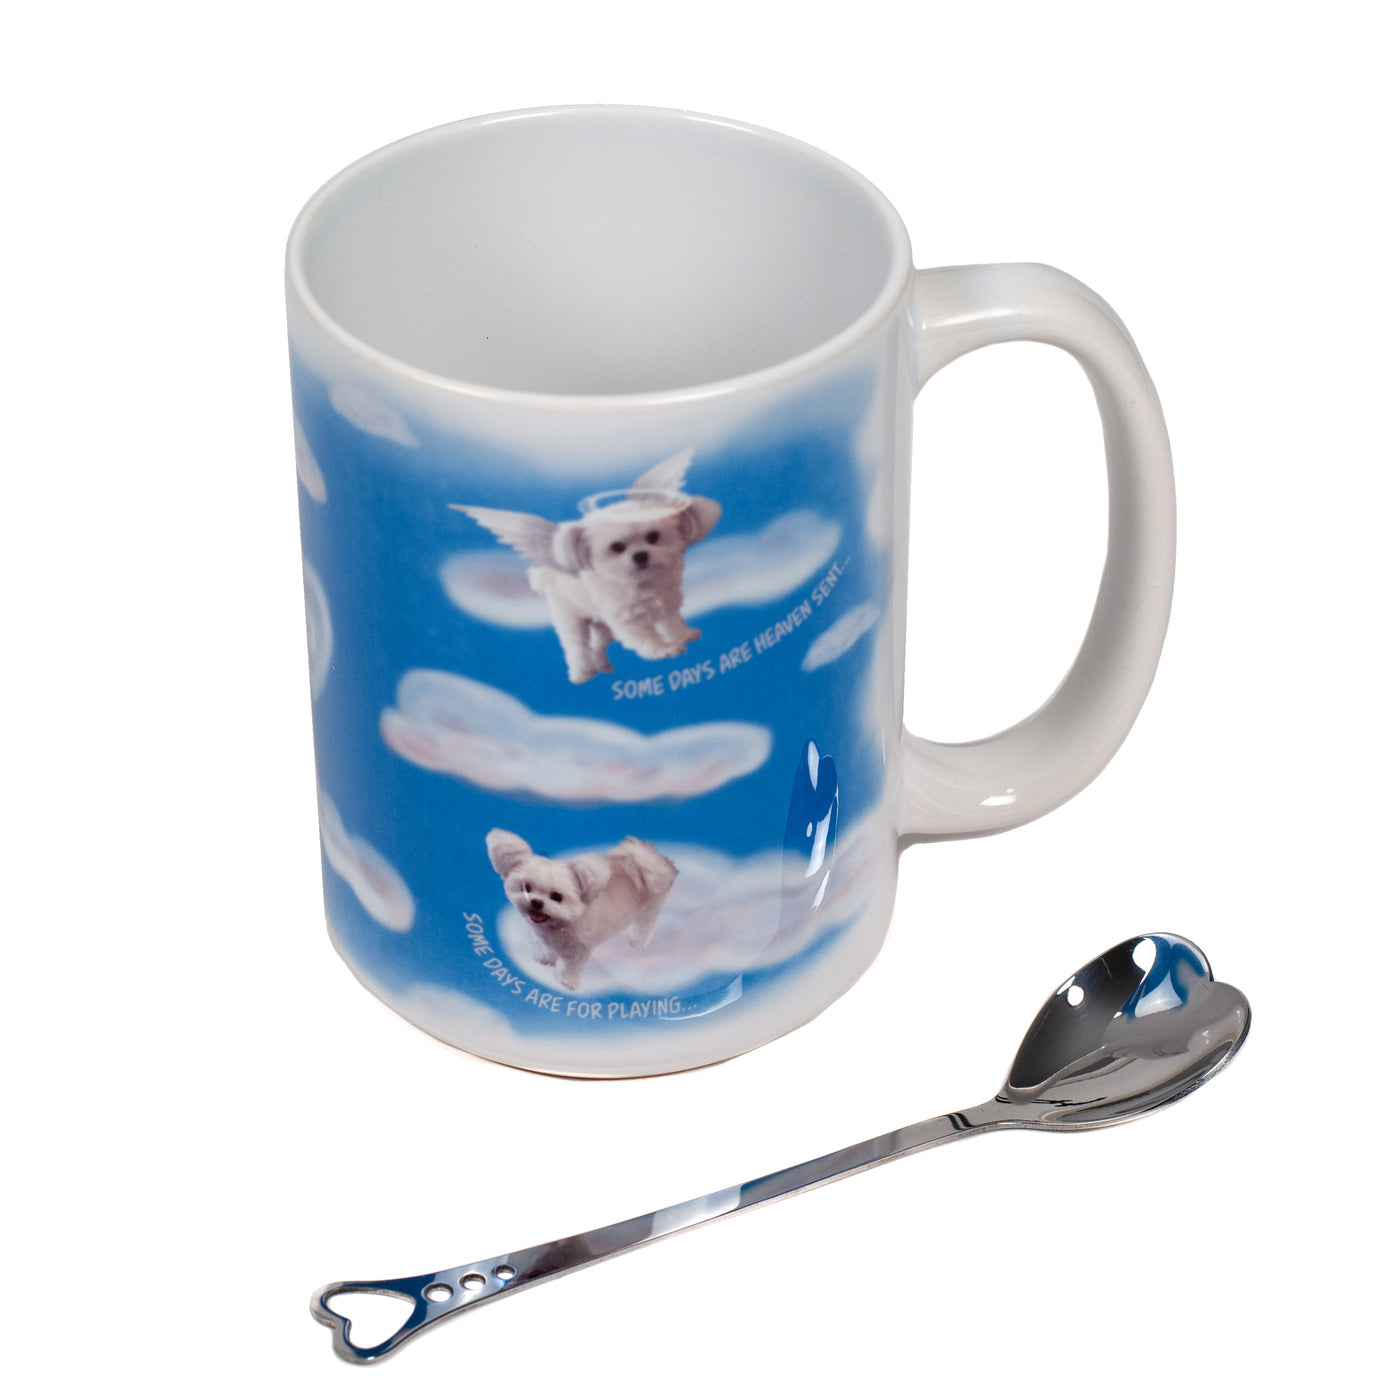 Coffee on Cloud 9 Mug